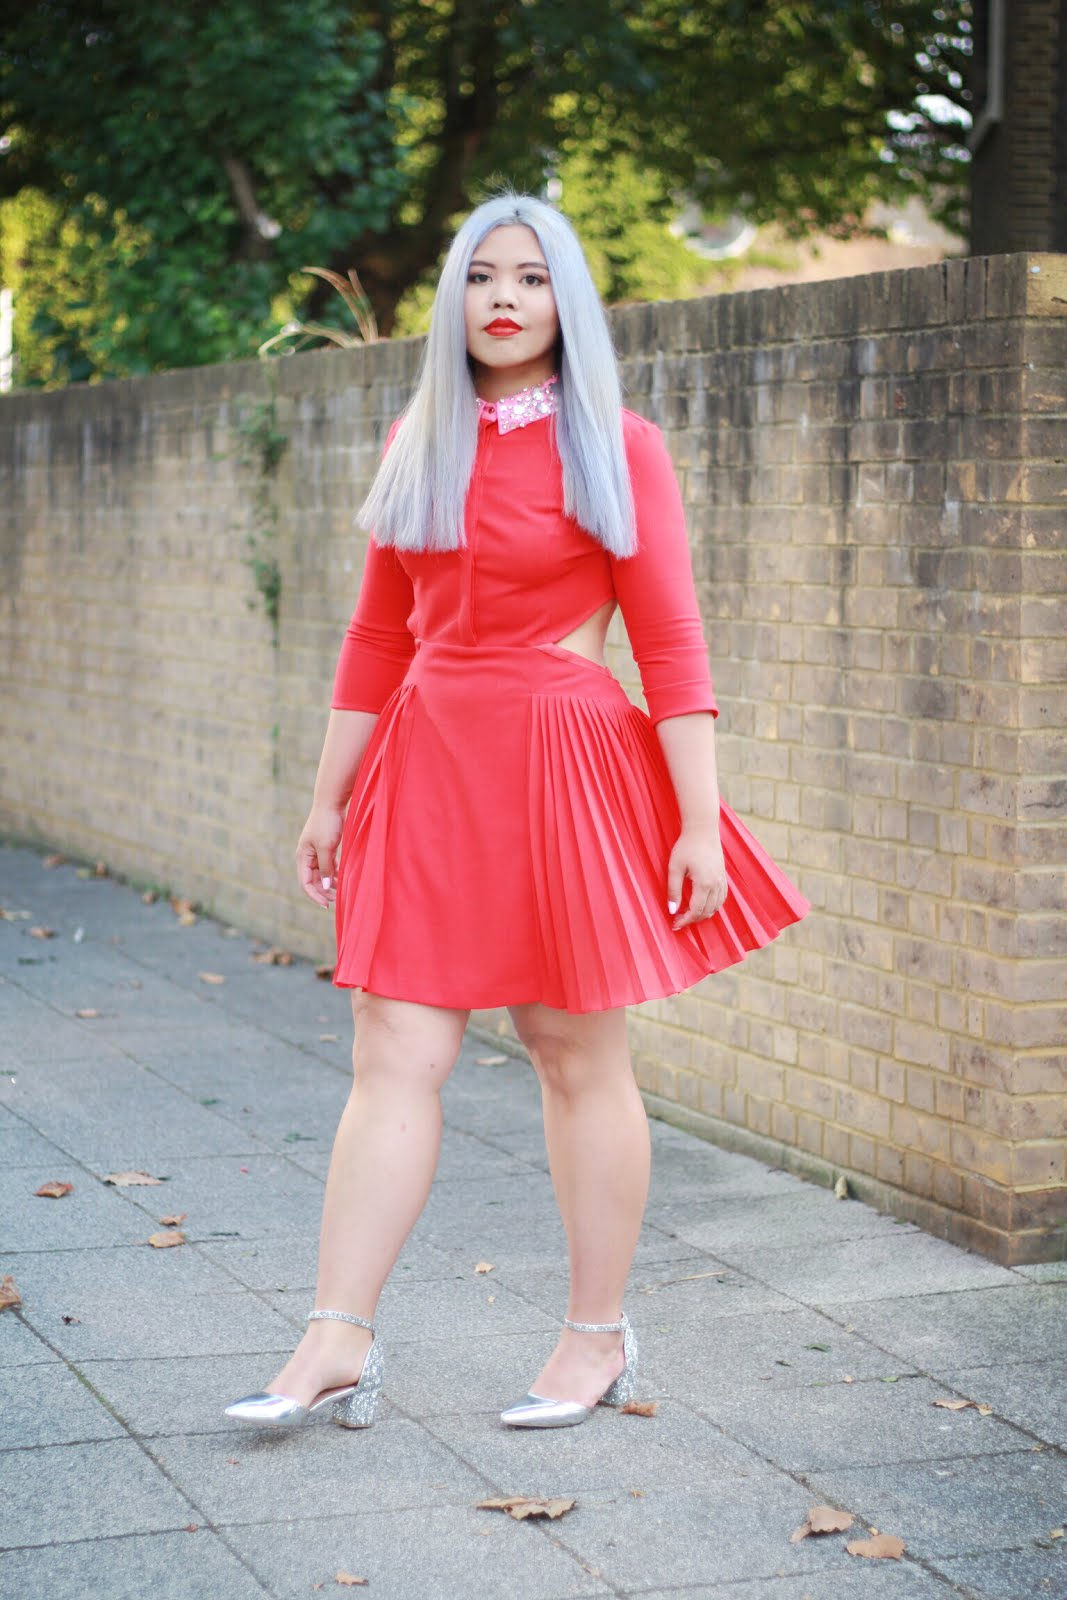 Dress up meaning - Granted I Don T Dress Up For Special Occasions Very Often Meaning I Don T Have Many To Go To Not That I M A Slob Lol